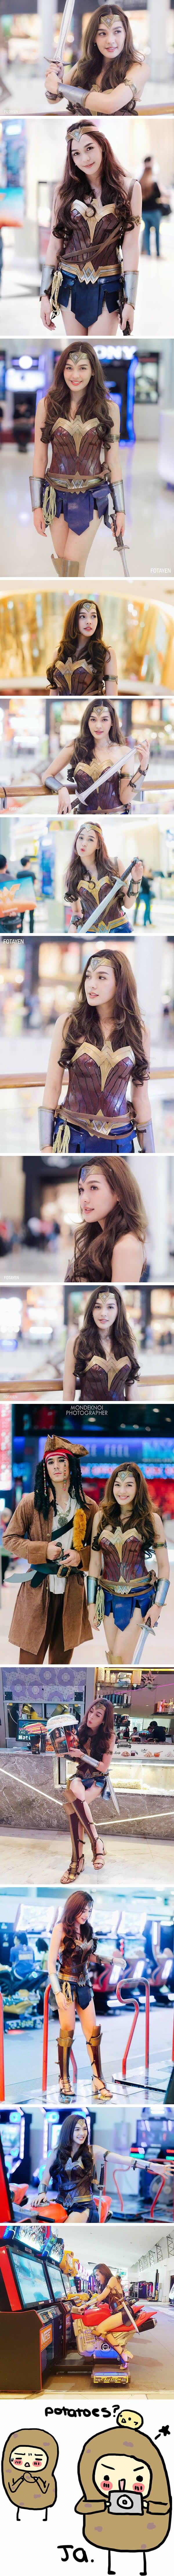 Stunning Wonder Woman cosplay will make you fall in love with Diana: Please meet Pichyada Chatlkamjaroen (Rae)